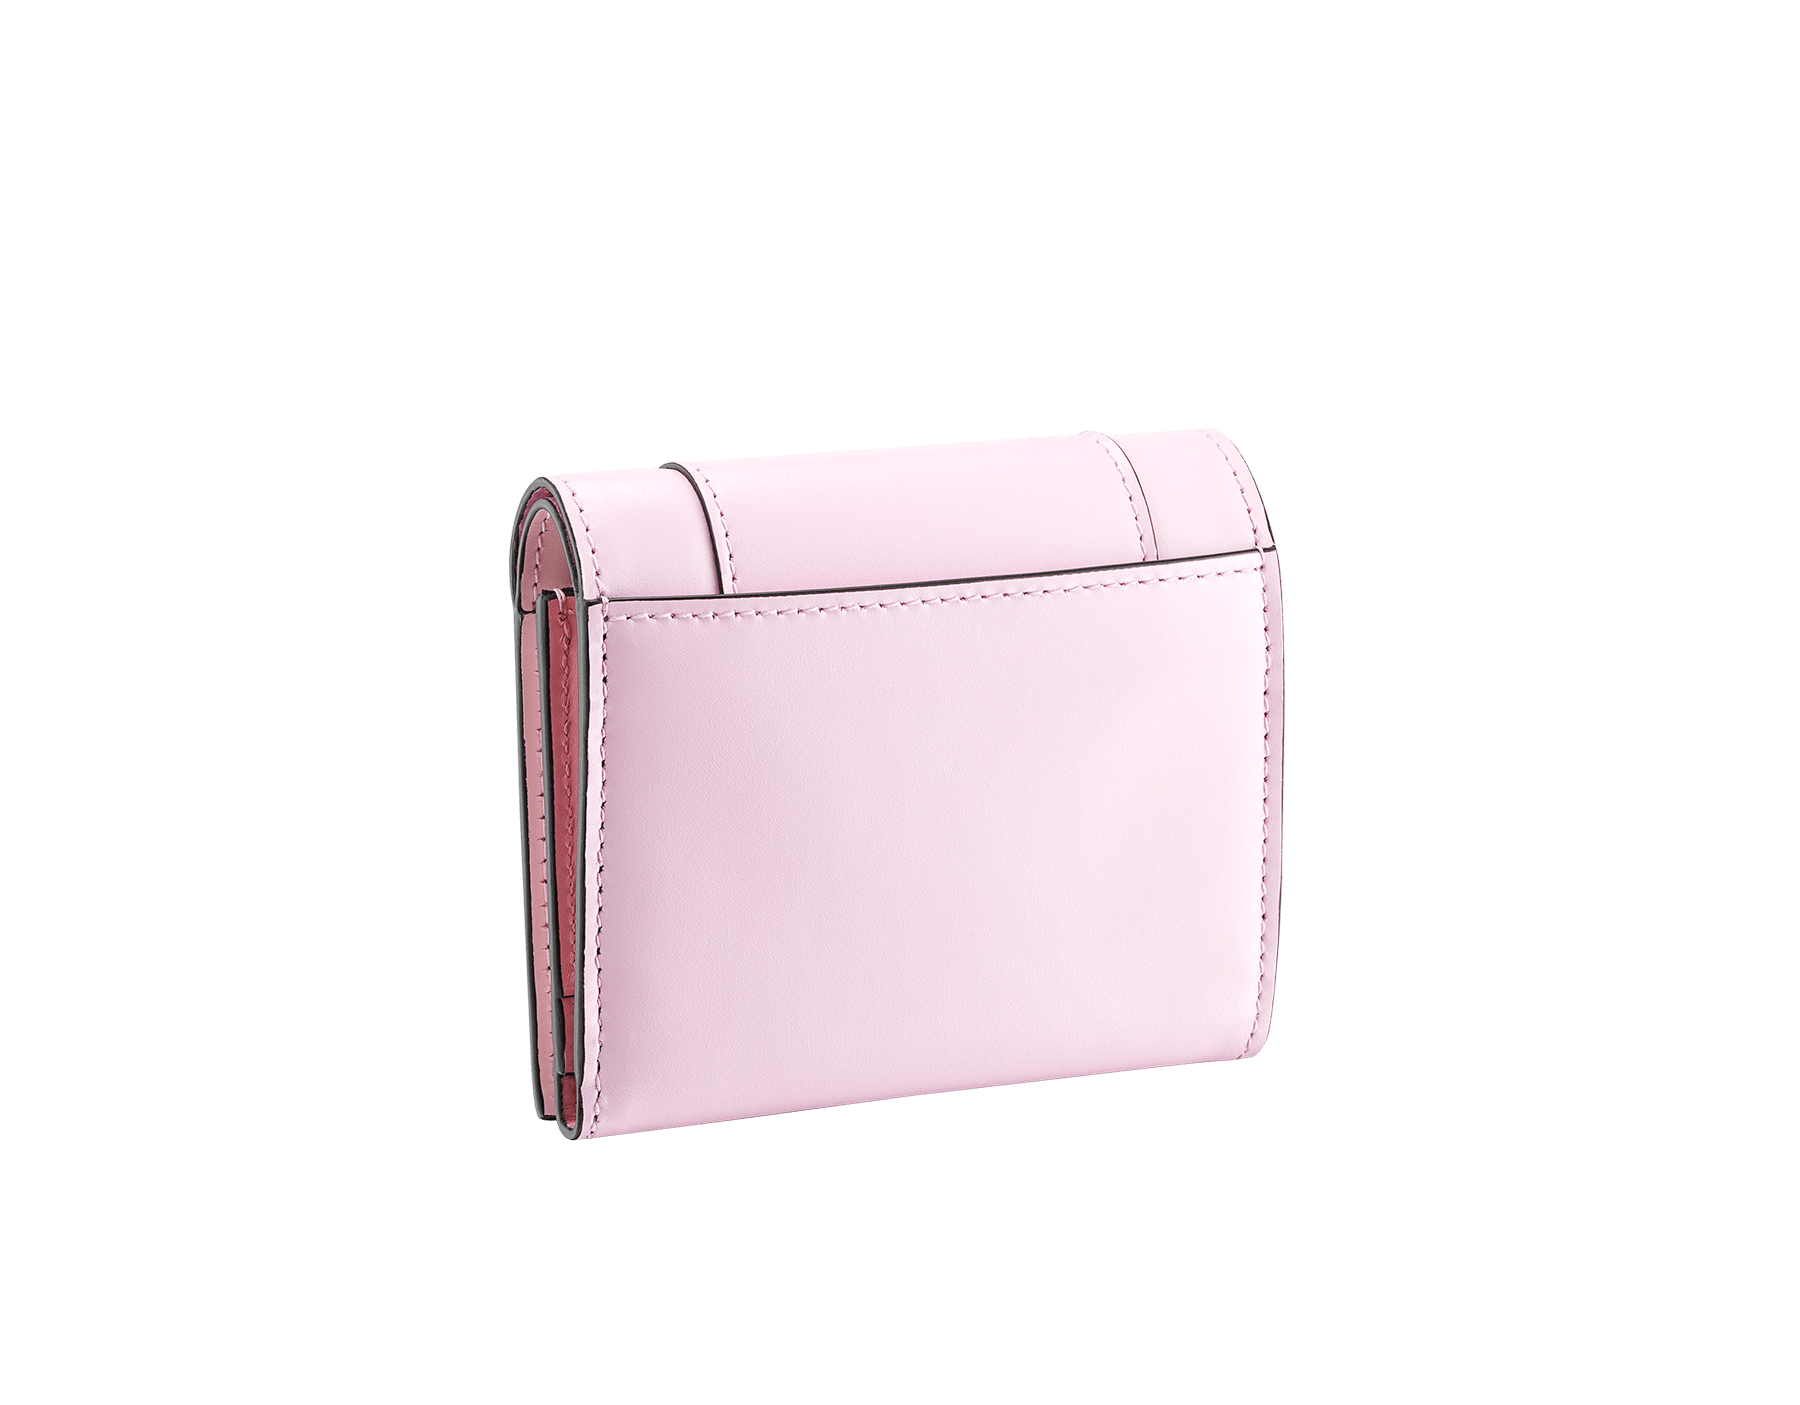 Serpenti Forever super compact wallet in rosa di francia and flamingo quartz calf leather. Iconic snakehead press stud closure in black and white enamel, with green malachite enamel eyes. 289061 image 3